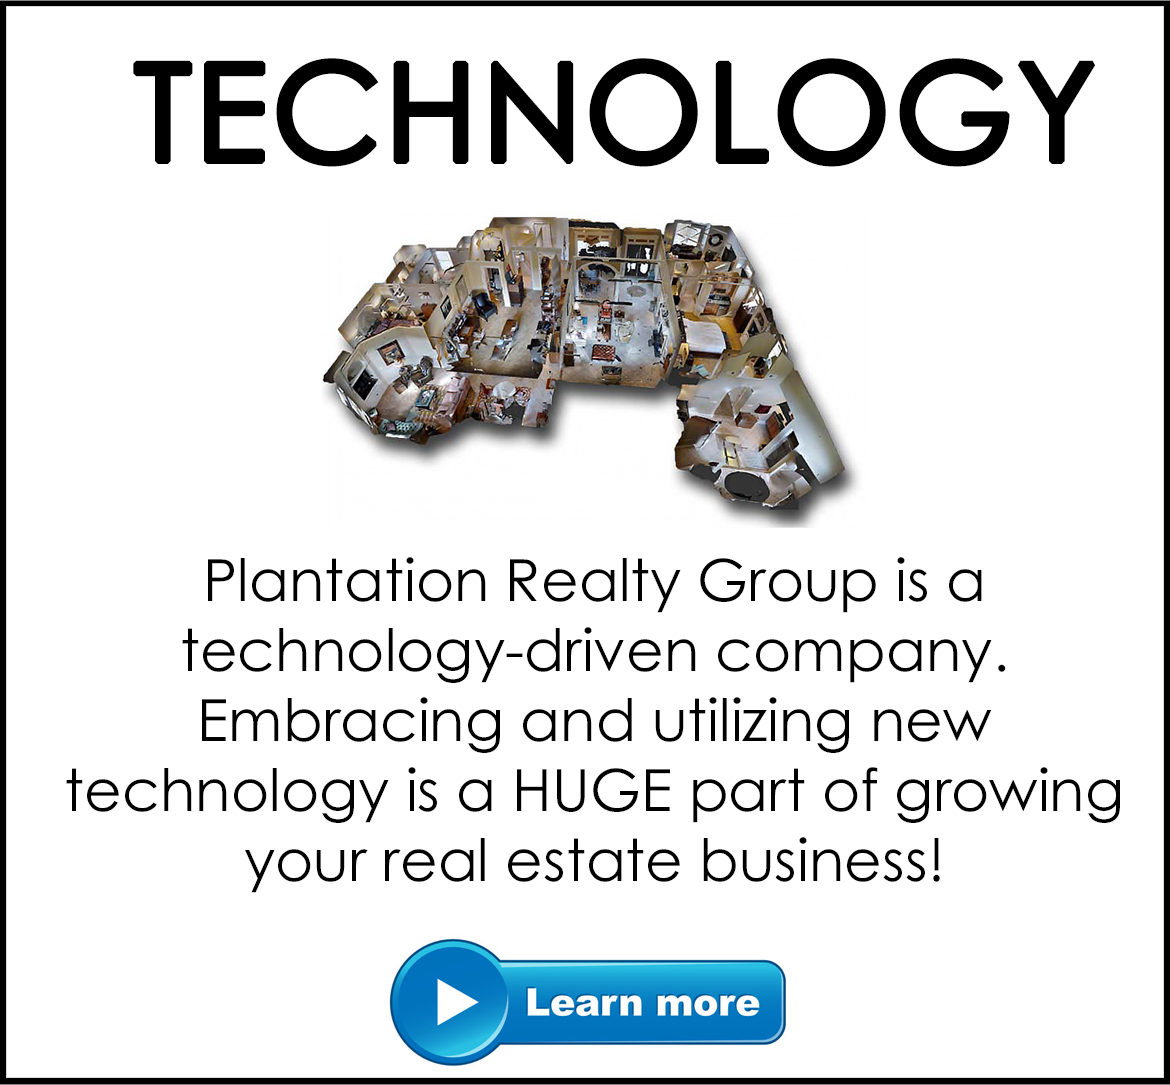 Join Plantation Realty Group Technology